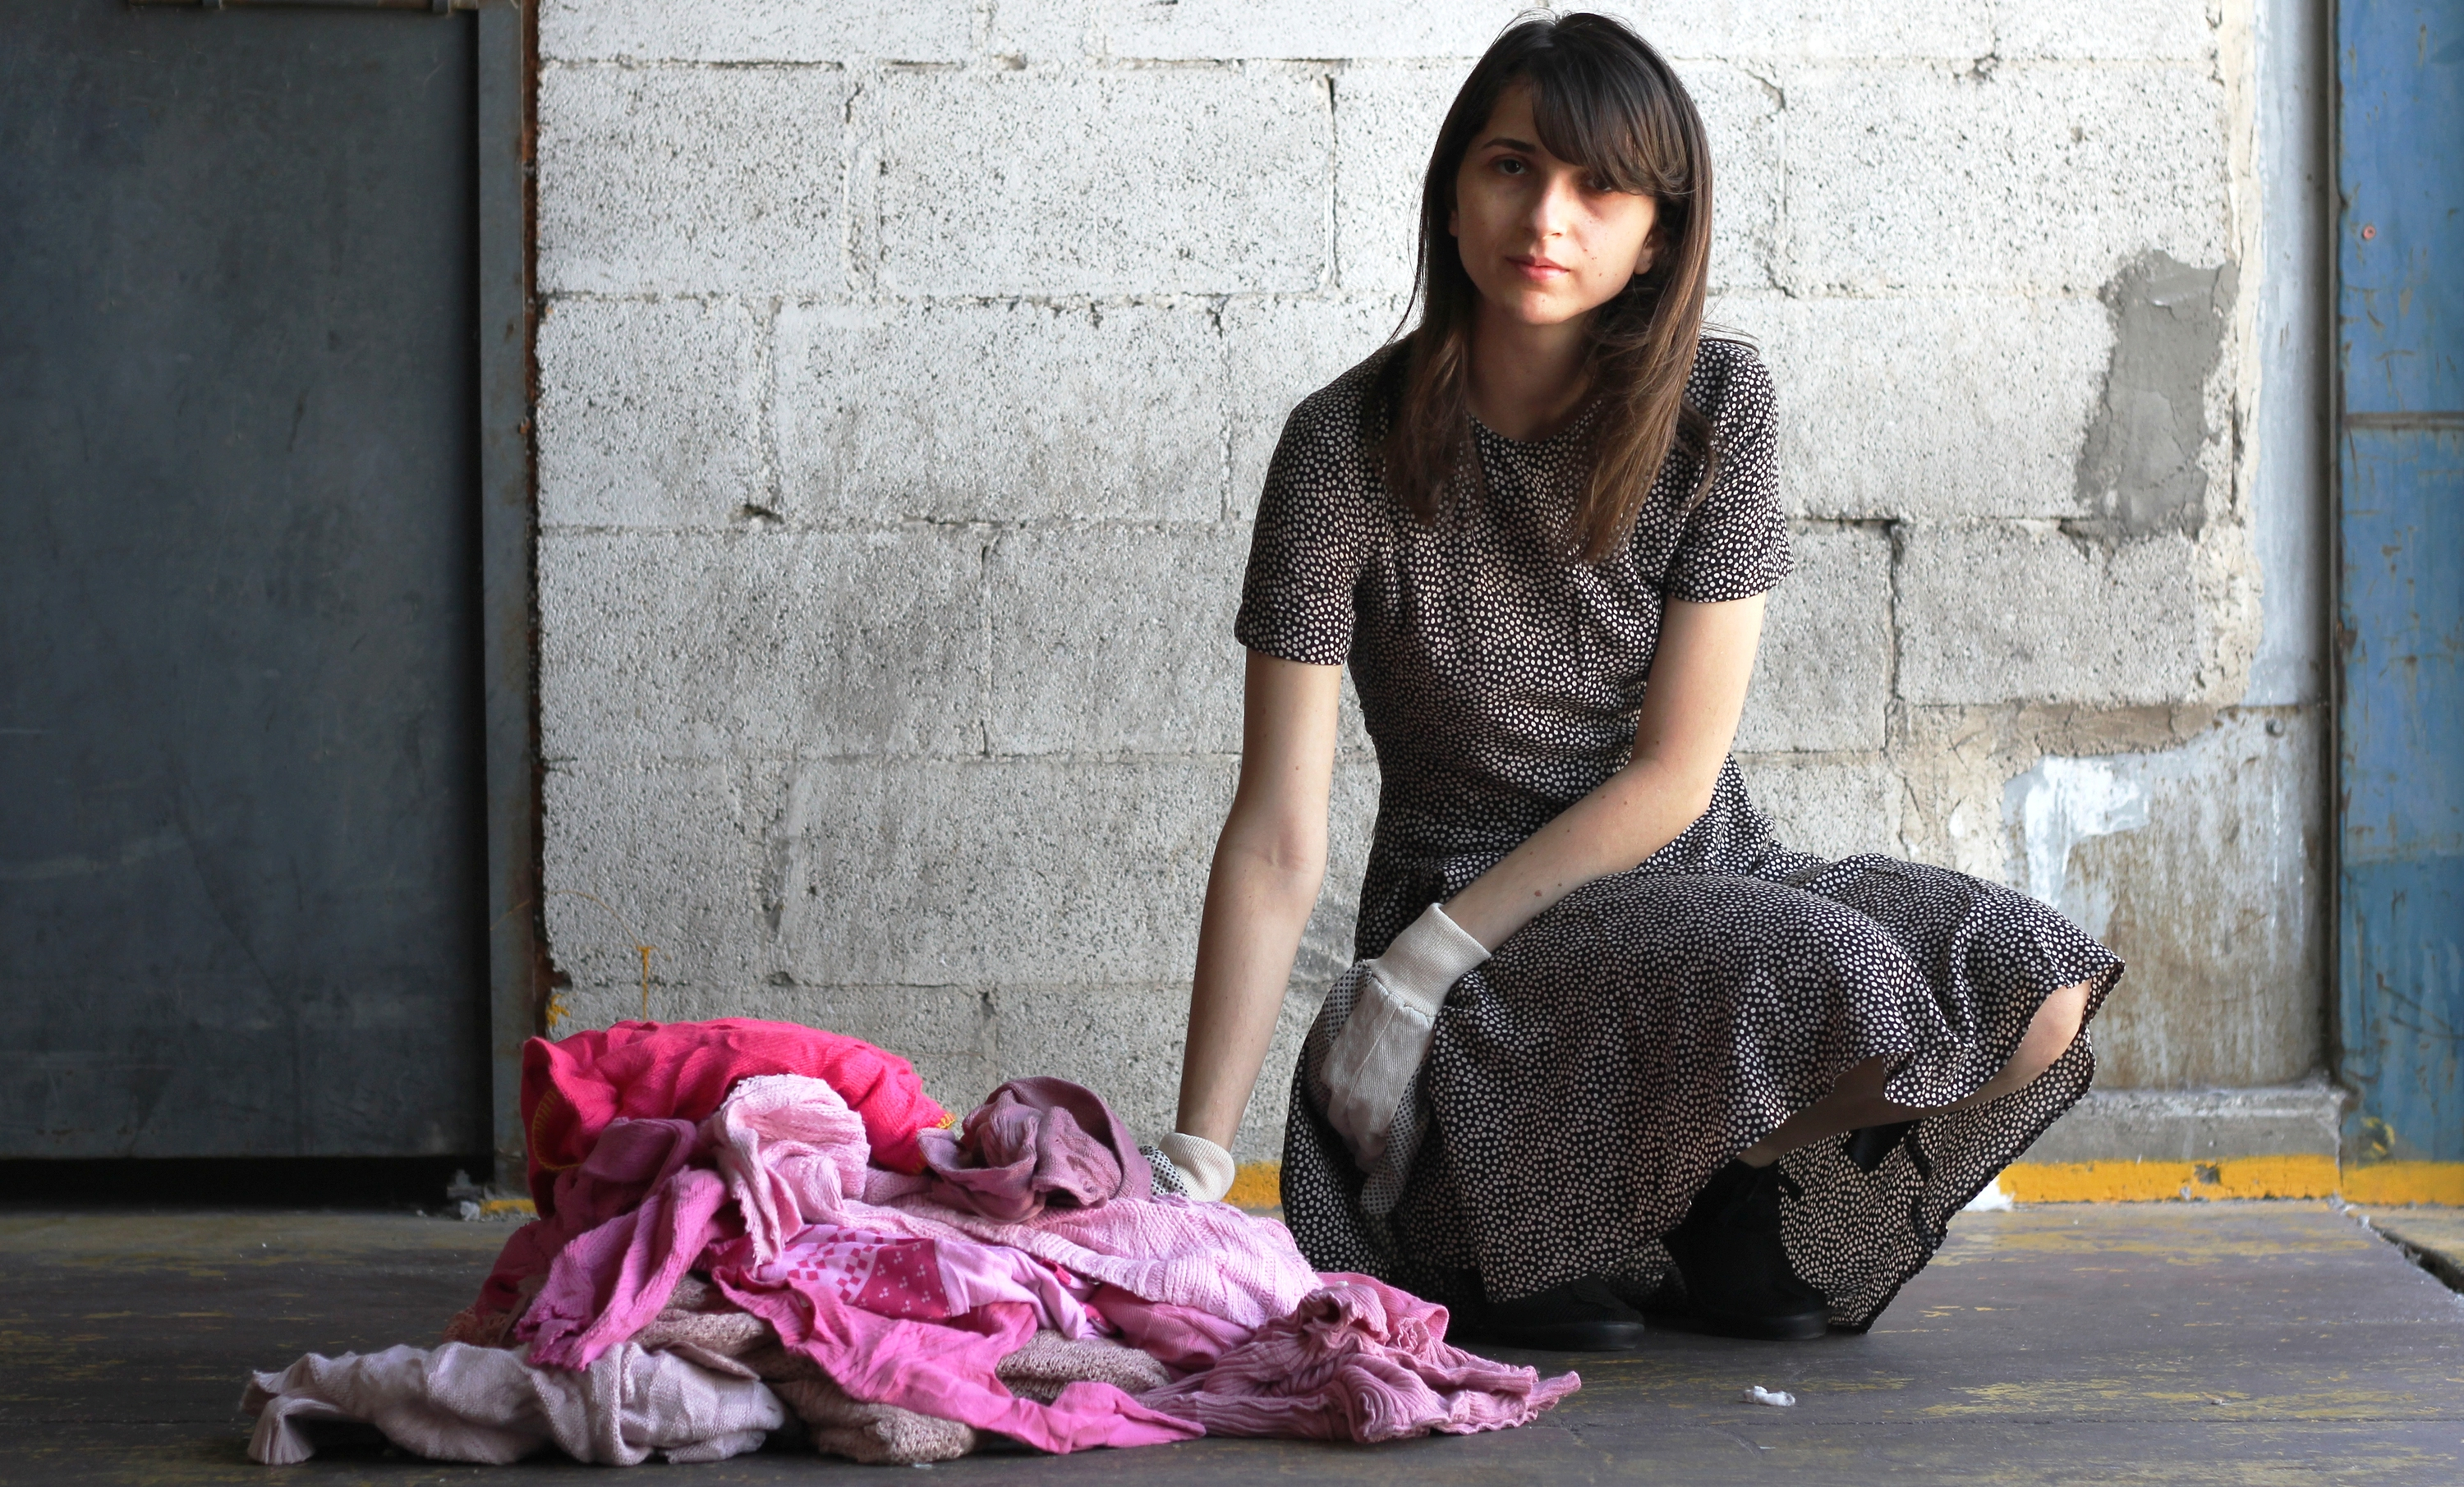 Israeli designer Dana Cohen is making fashionable waves with her sustainable approach